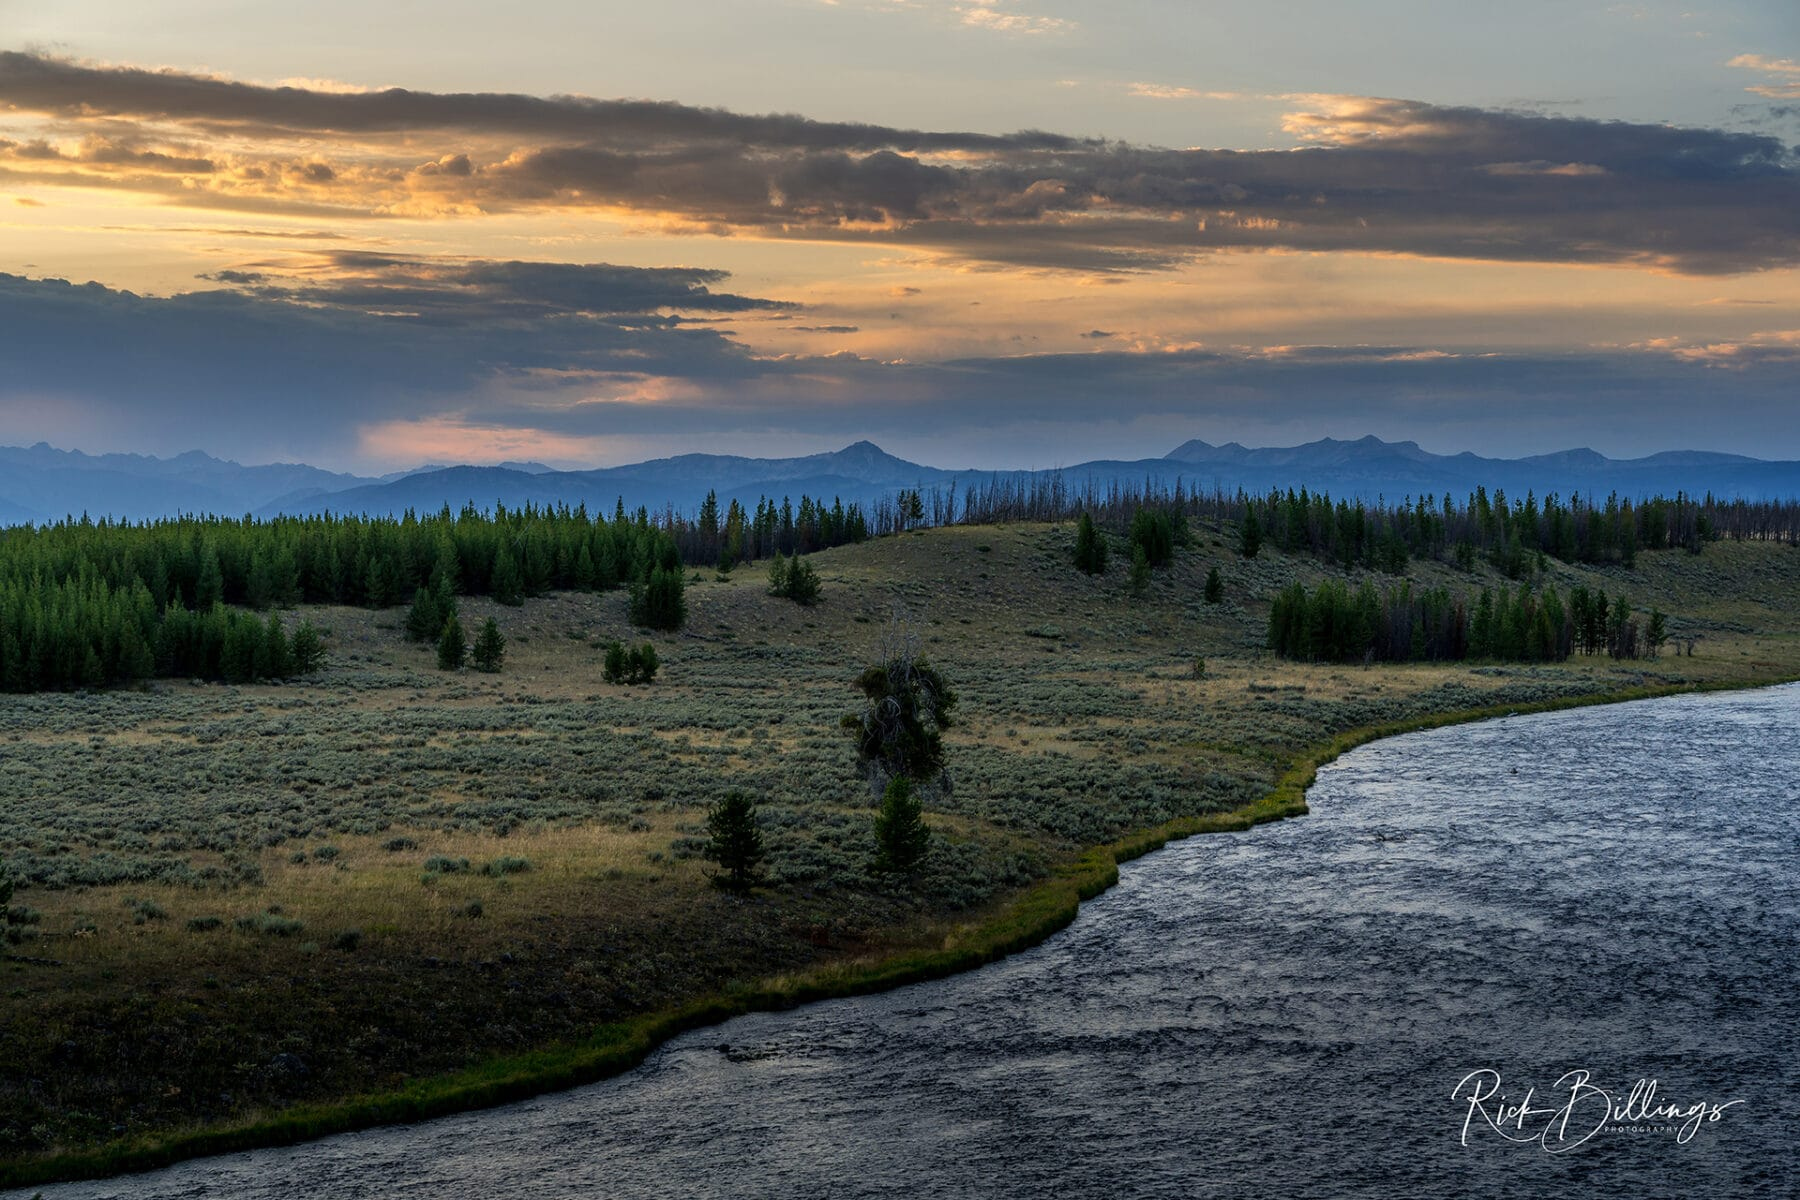 No 1060 20190820 Yellowstone Sunset River